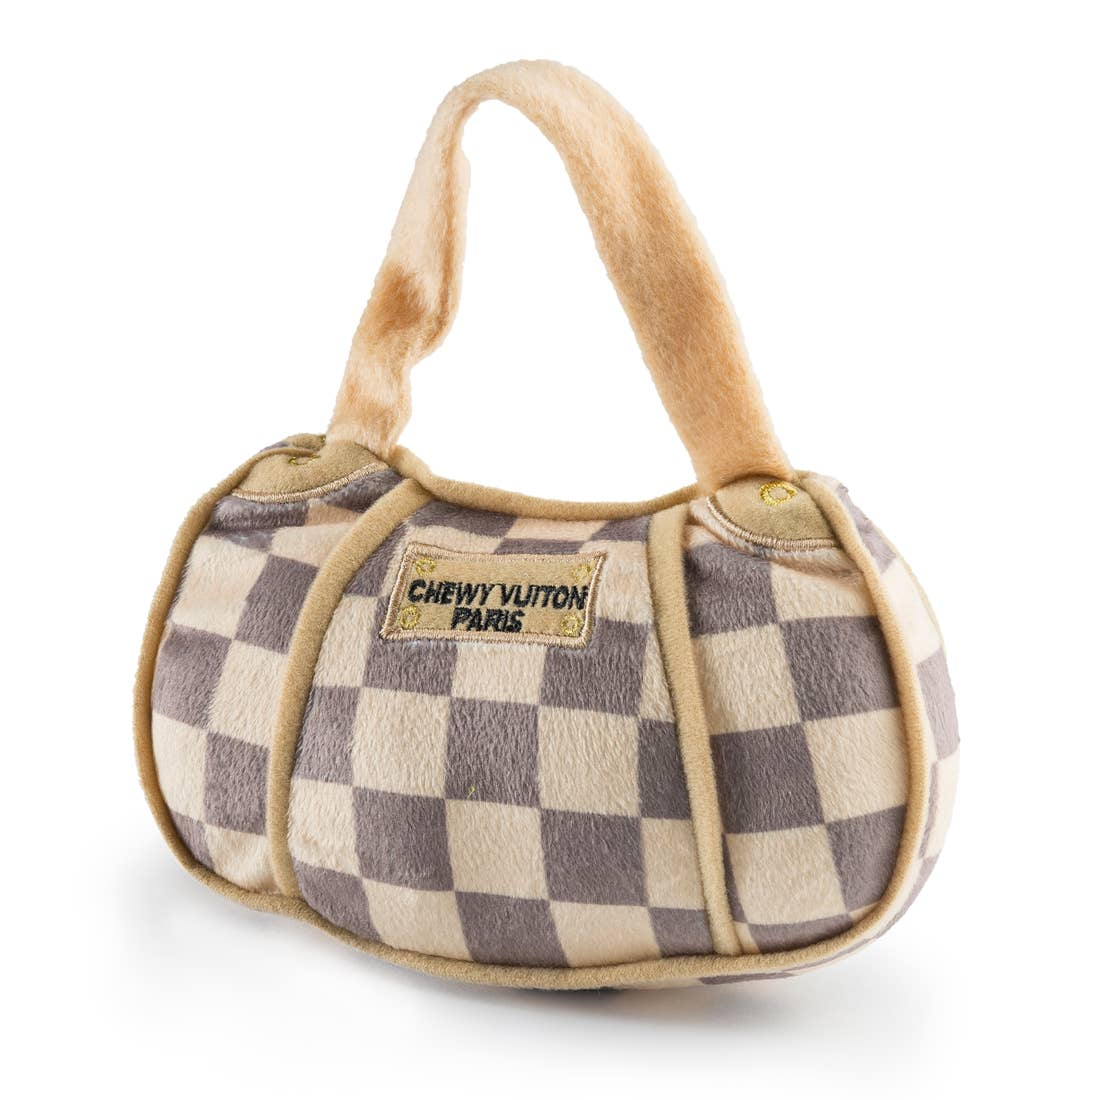 Chewy Vuitton Checker Handbag Large Dog Toy